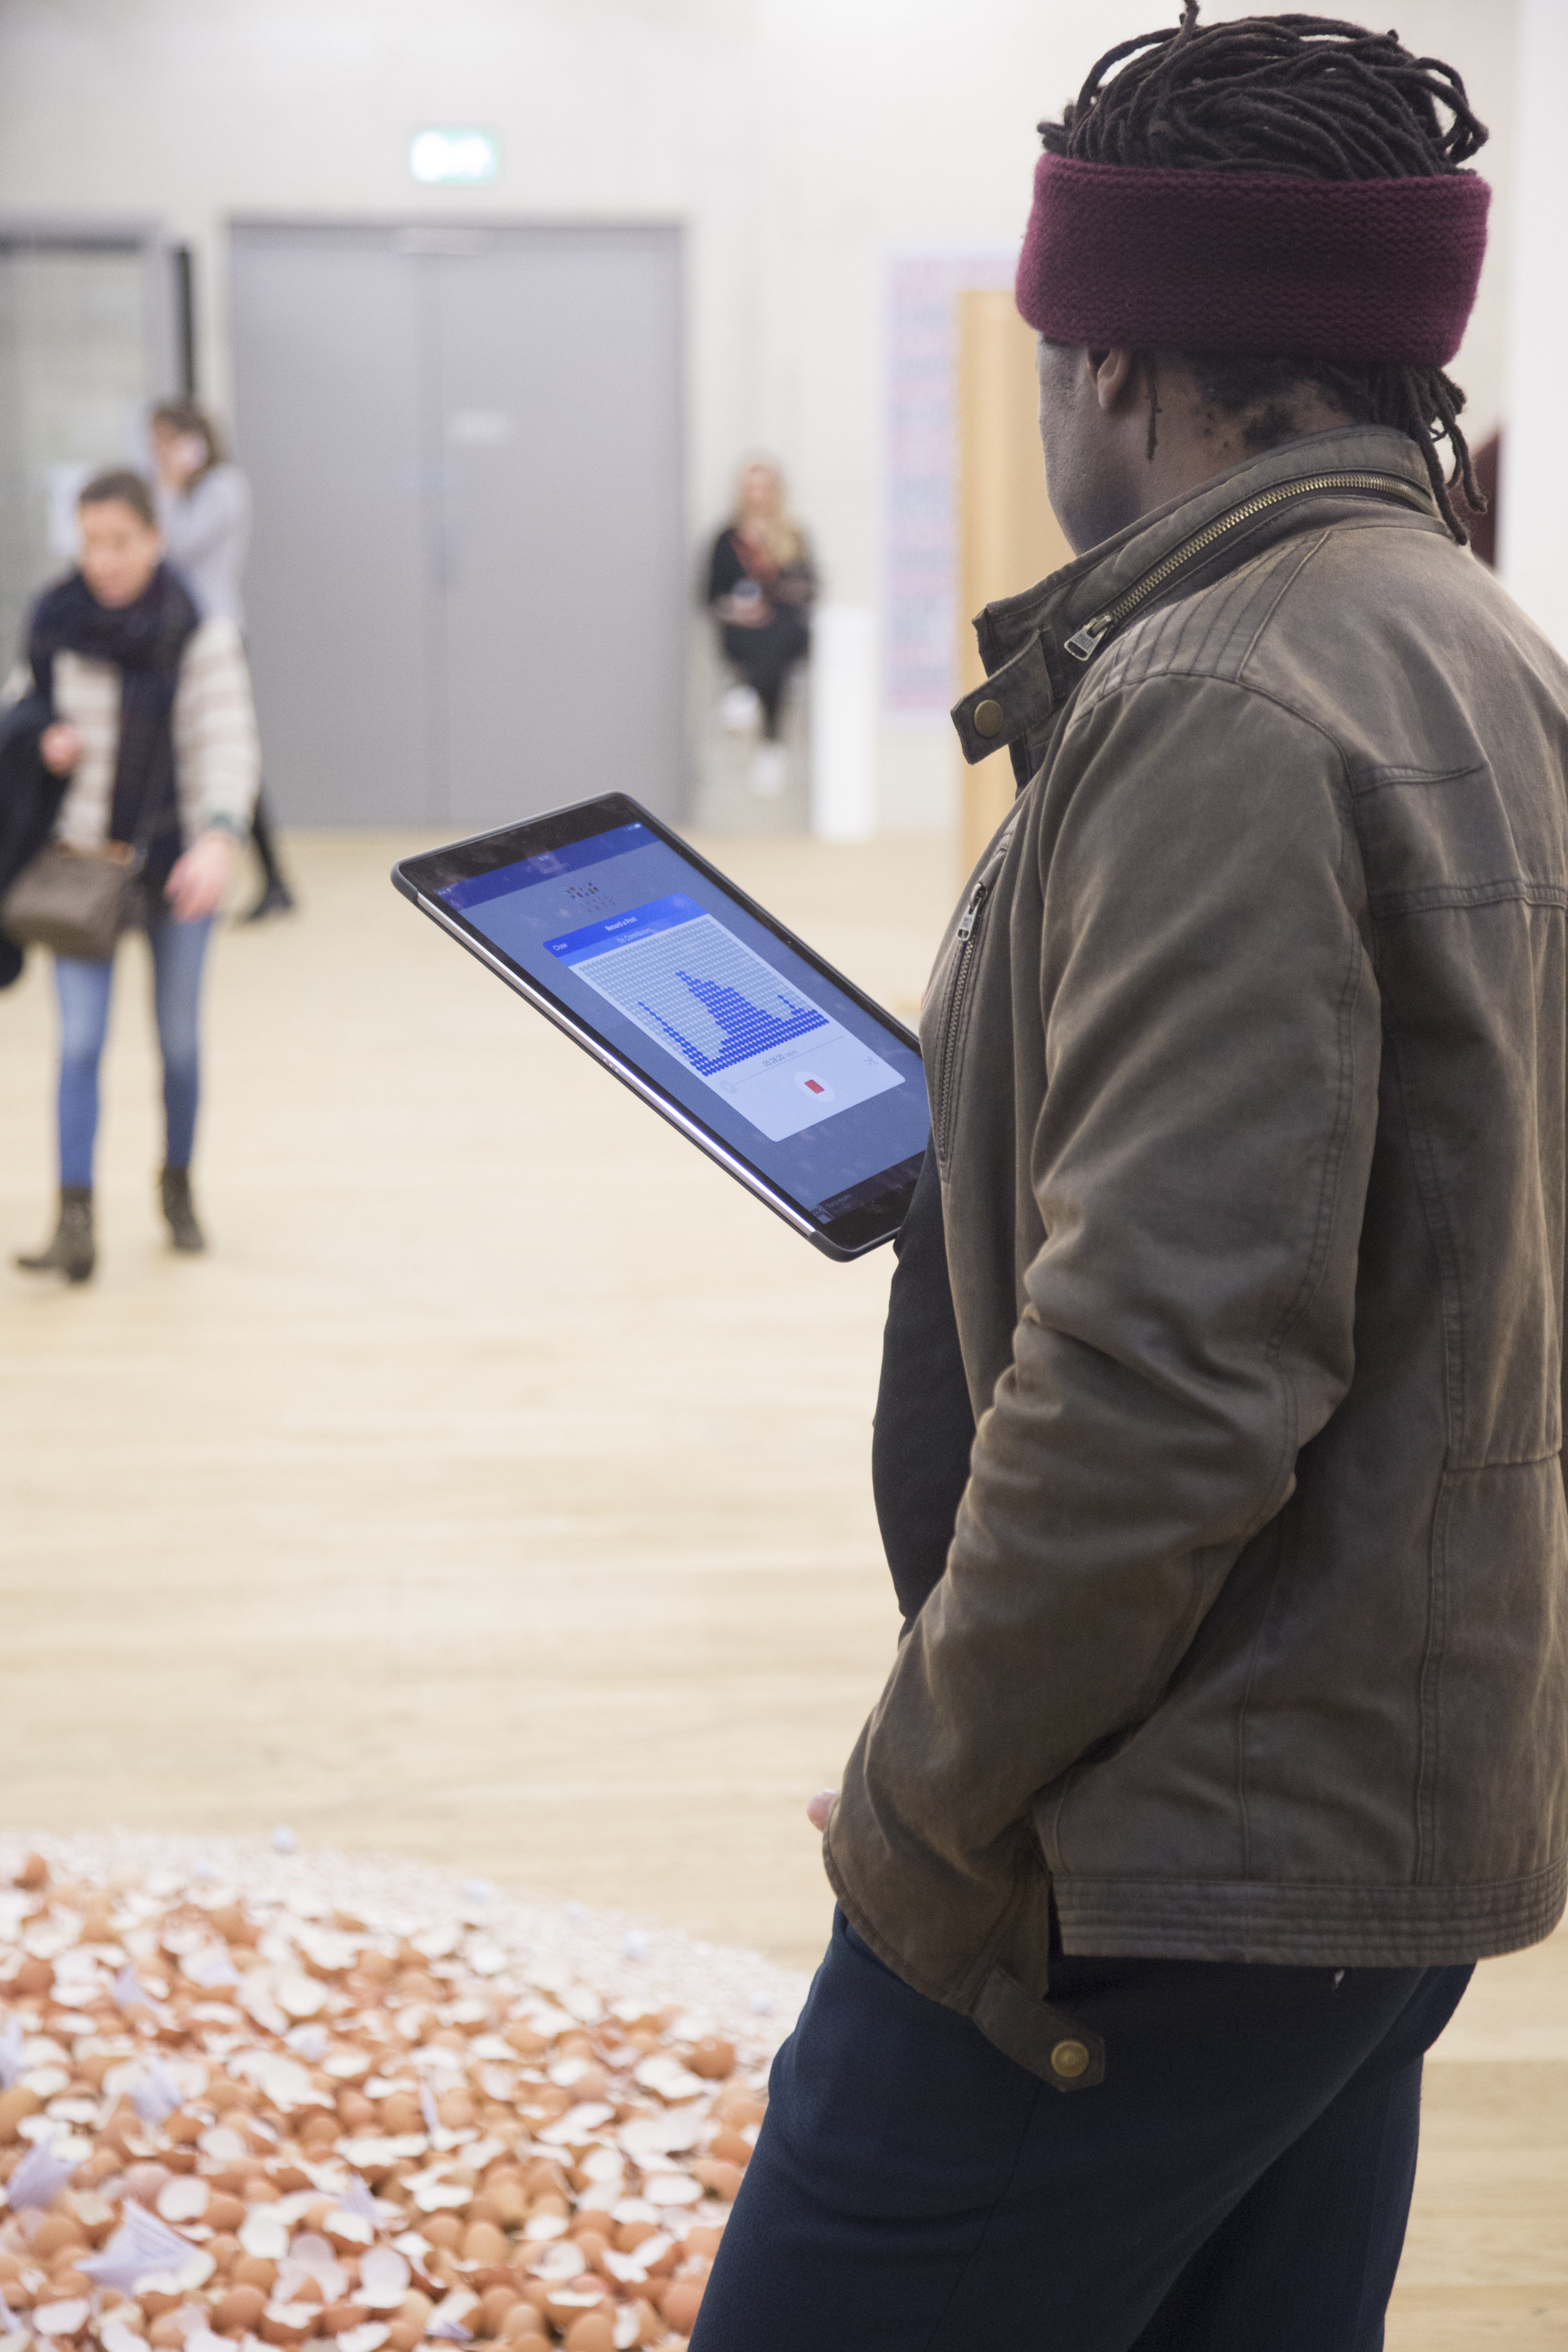 a man regards the ipad he is holding whilst standing before a floor installation of eggshells